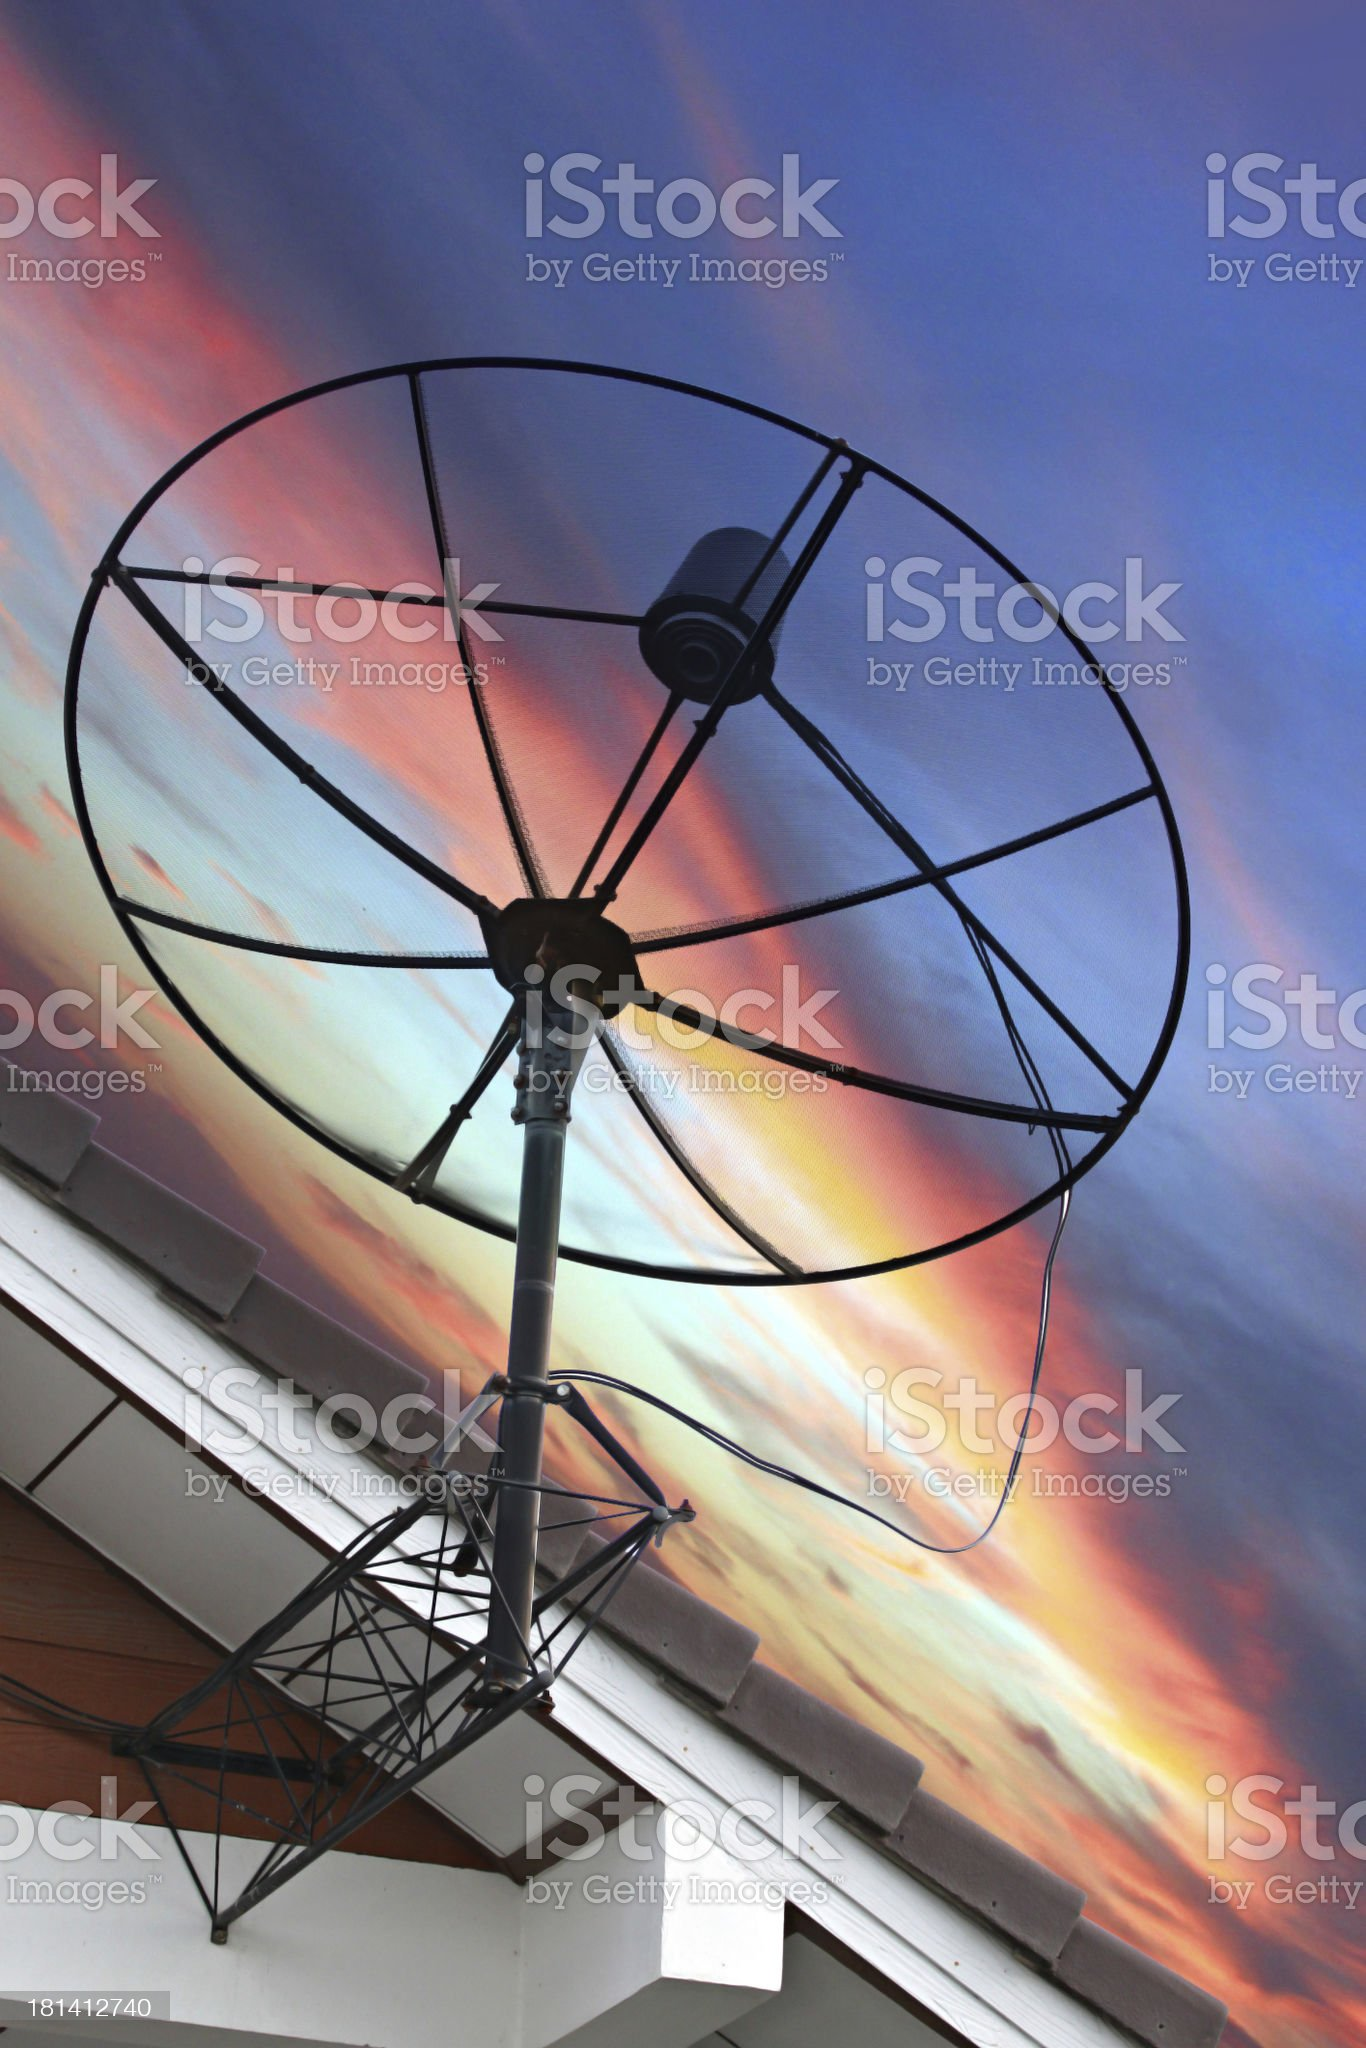 Satellite dish Stuck to roof of house on Evening light. royalty-free stock photo